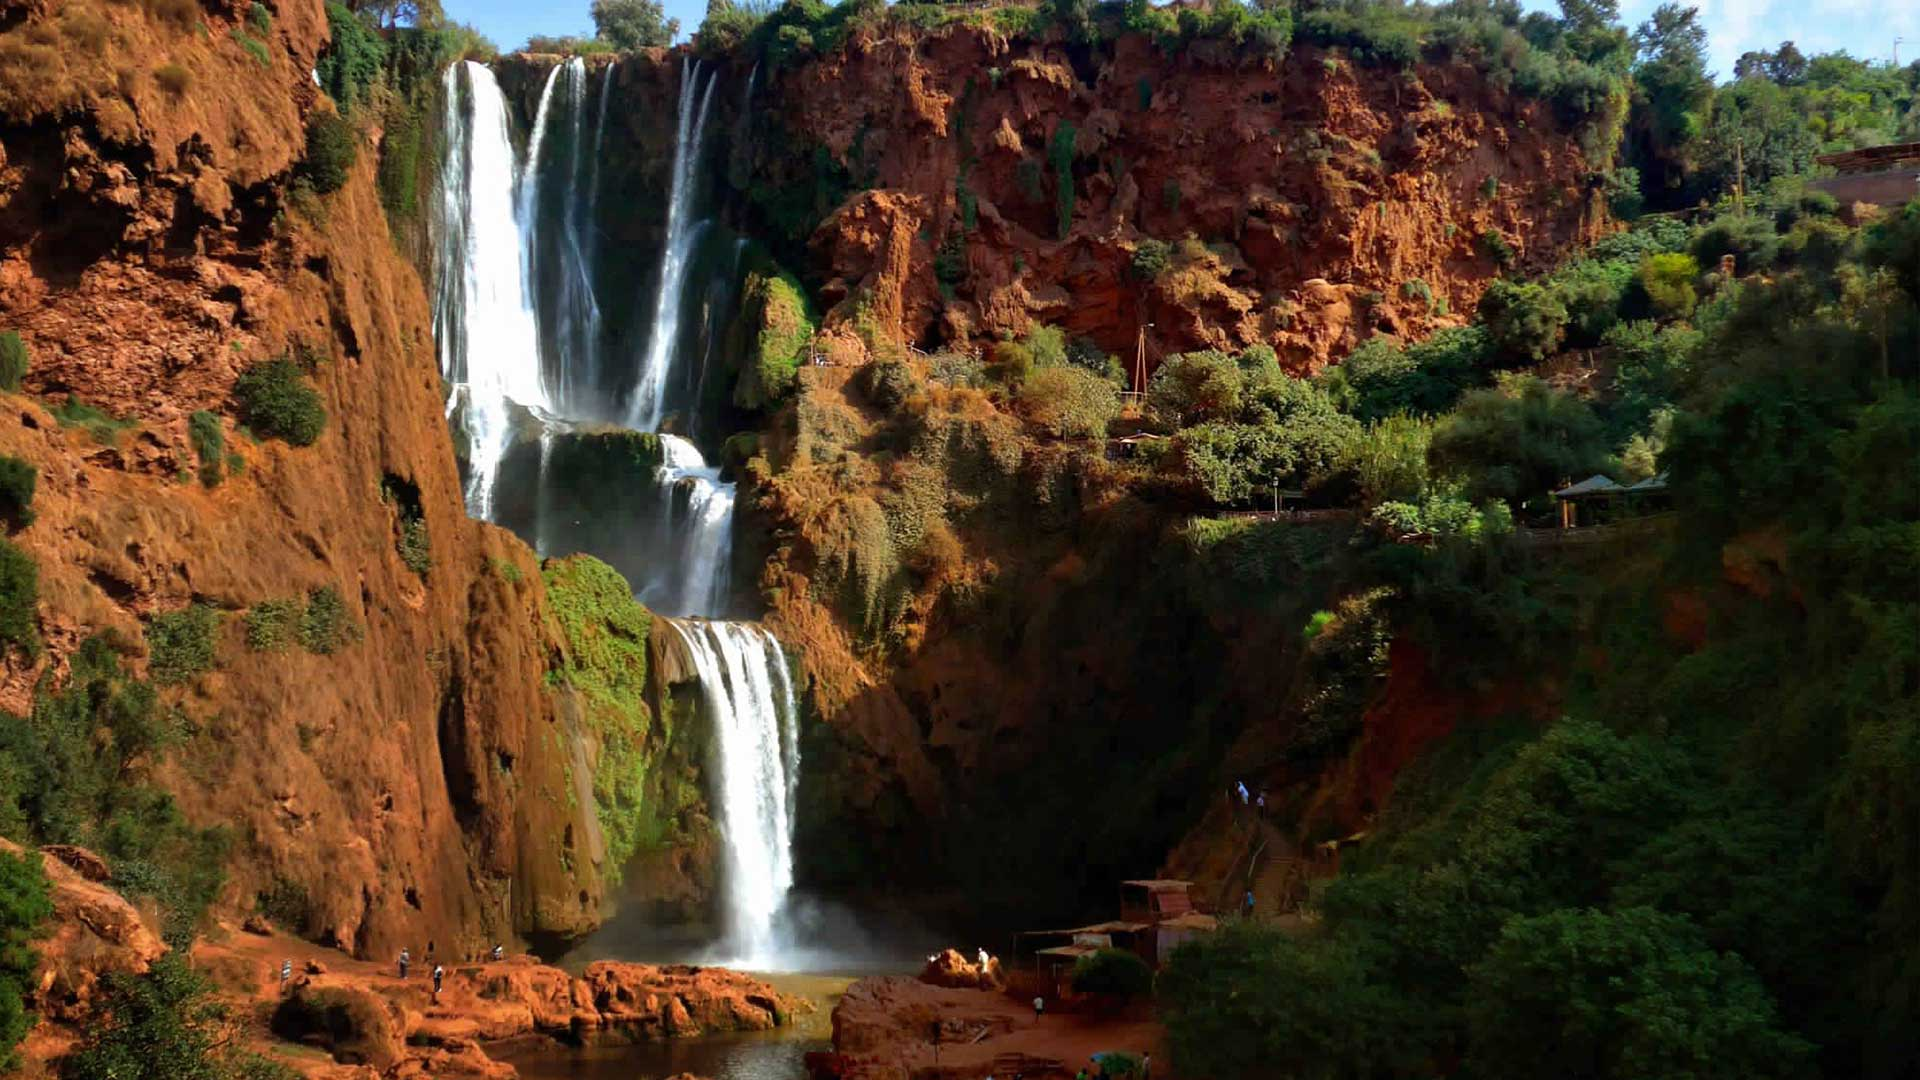 Day trip to Ouzoud Valley from Marrakech